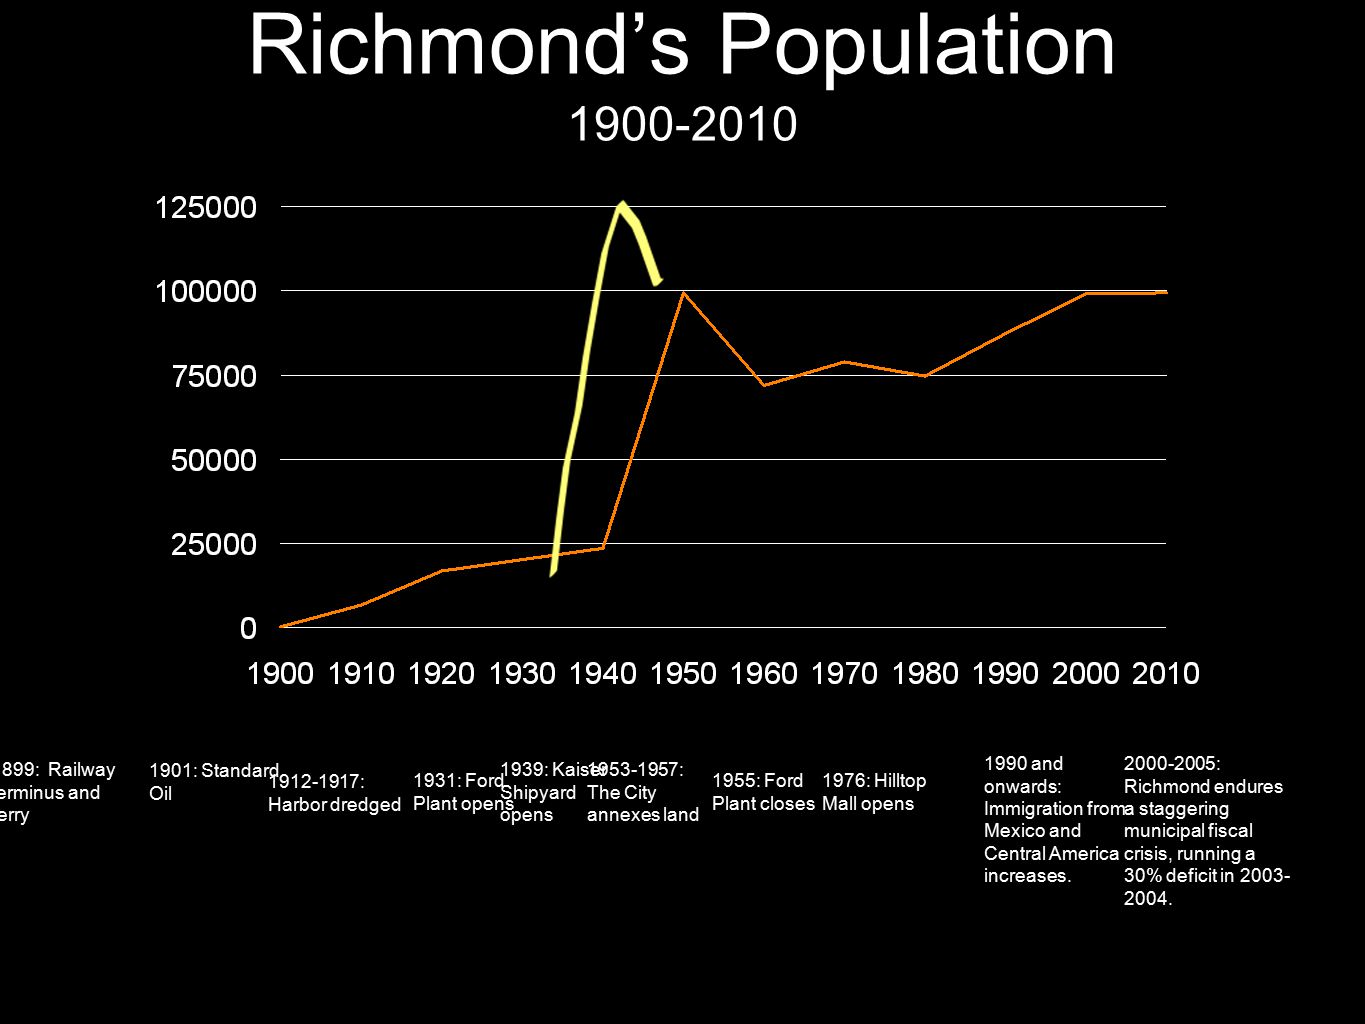 Richmond's Population 1900-2010 1899: Railway terminus and ferry 1901: Standard Oil 1912-1917: Harbor dredged 1931: Ford Plant opens 1939: Kaiser Shipyard opens 1953-1957: The City annexes land 1976: Hilltop Mall opens 2000-2005: Richmond endures a staggering municipal fiscal crisis, running a 30% deficit in 2003- 2004.